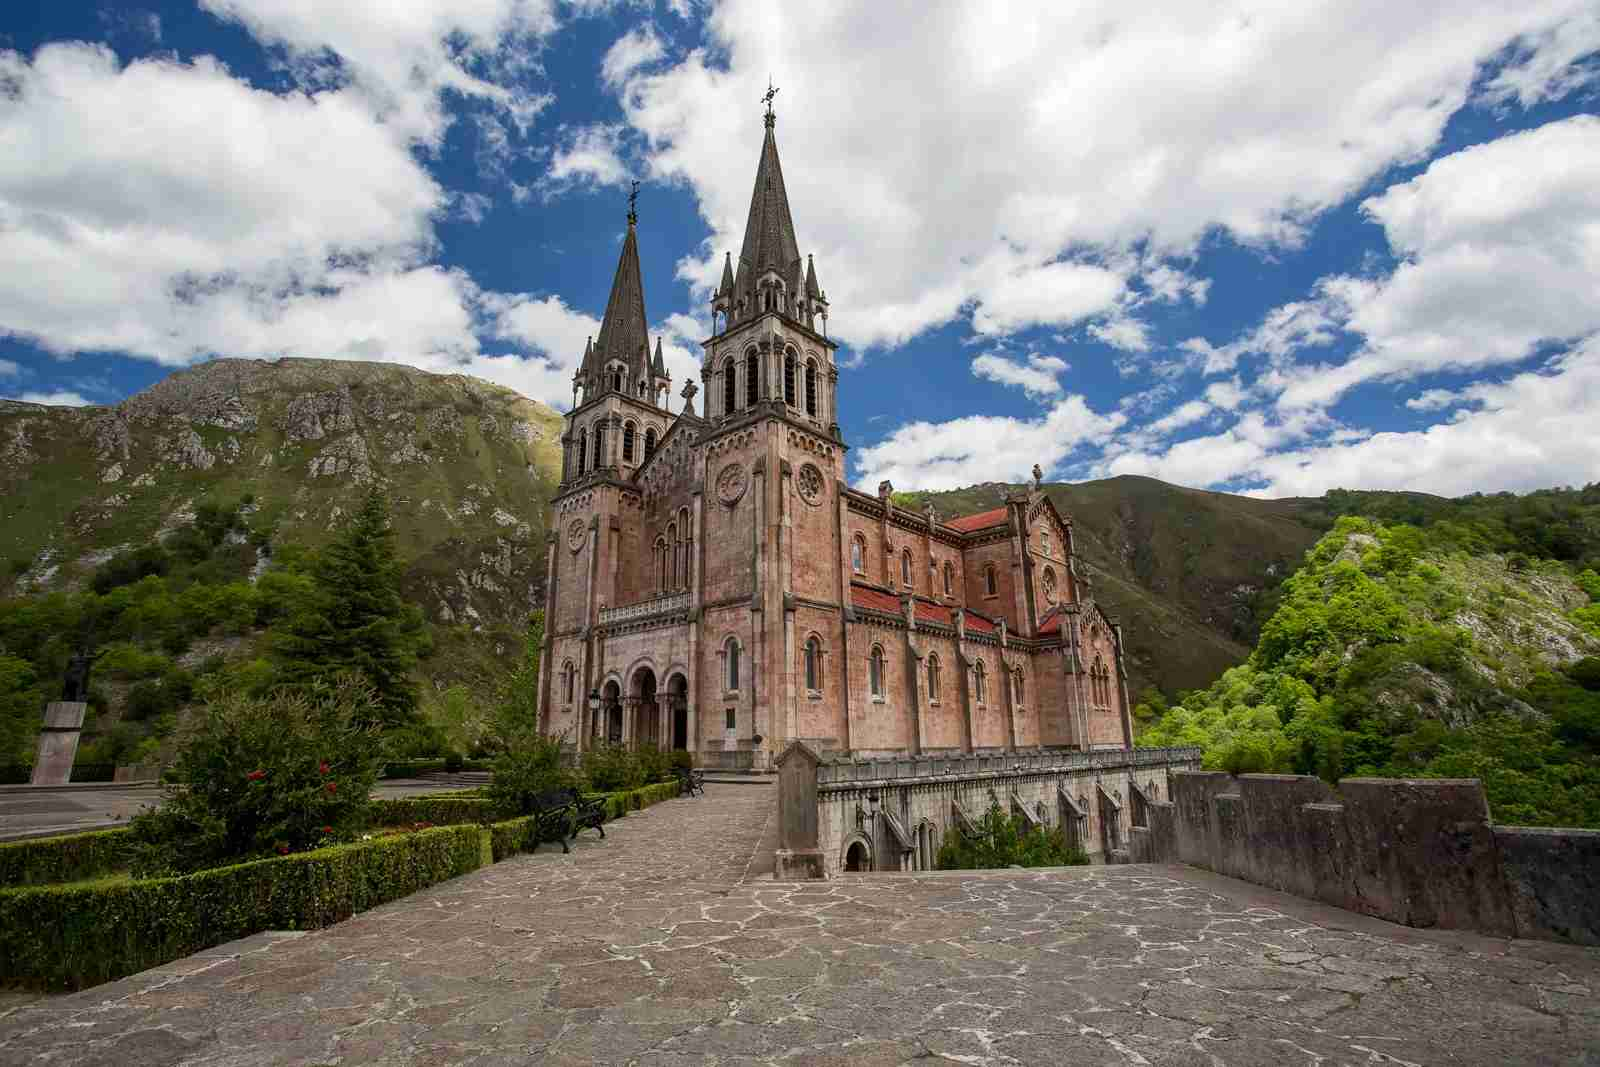 TheBasílica de Santa María la Real in Covadonga. (Photo by Phillipe Saire Photography/Getty Images)